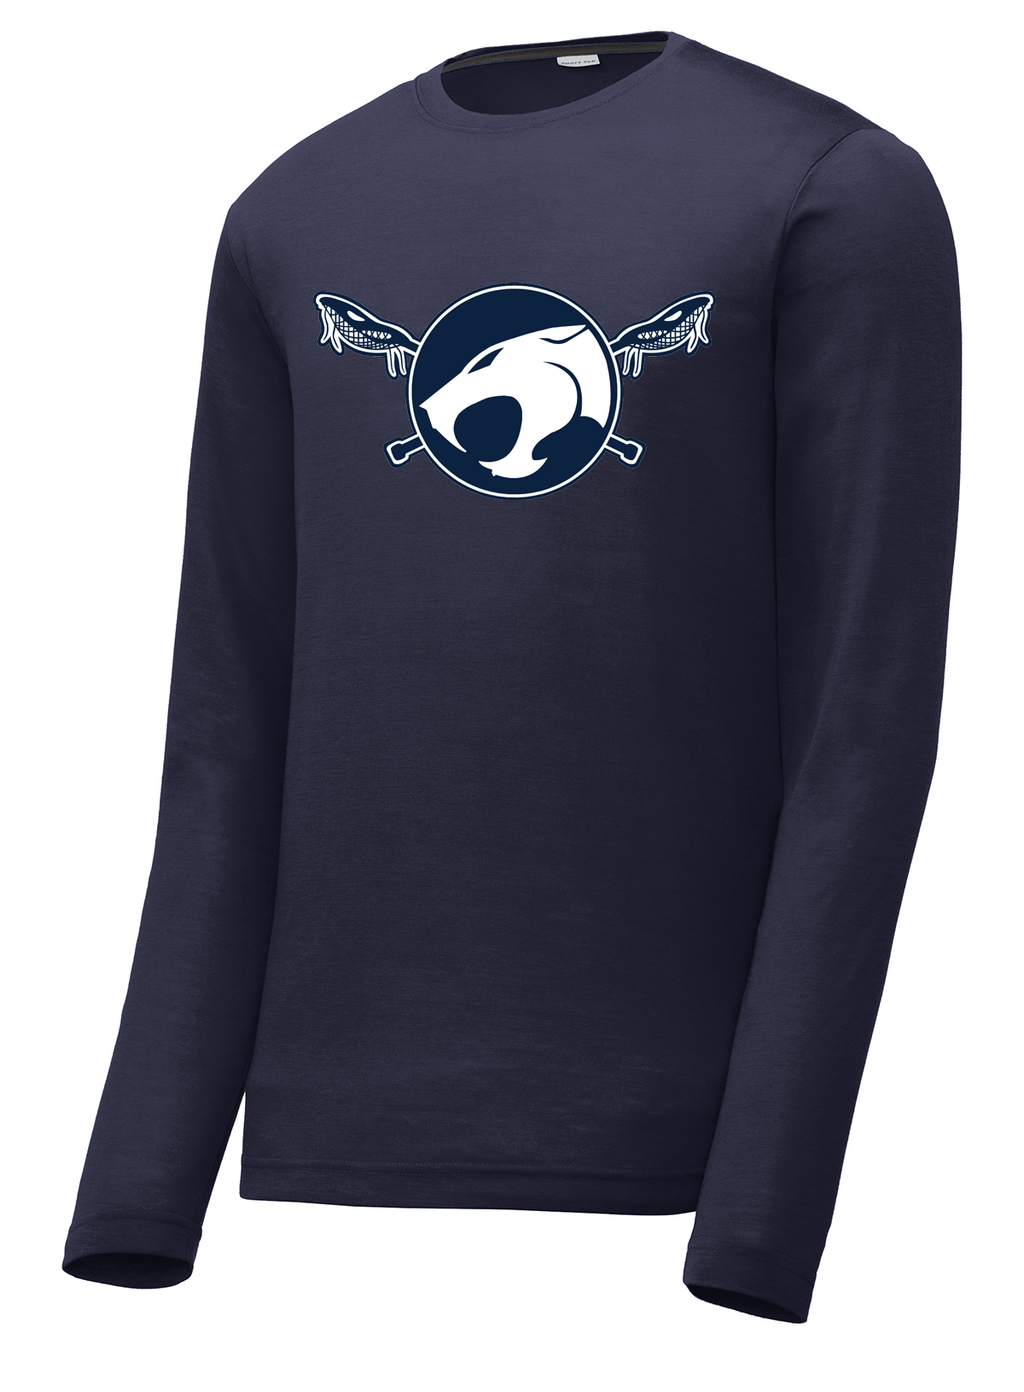 Reitz Lacrosse Navy Long Sleeve CottonTouch Performance Shirt